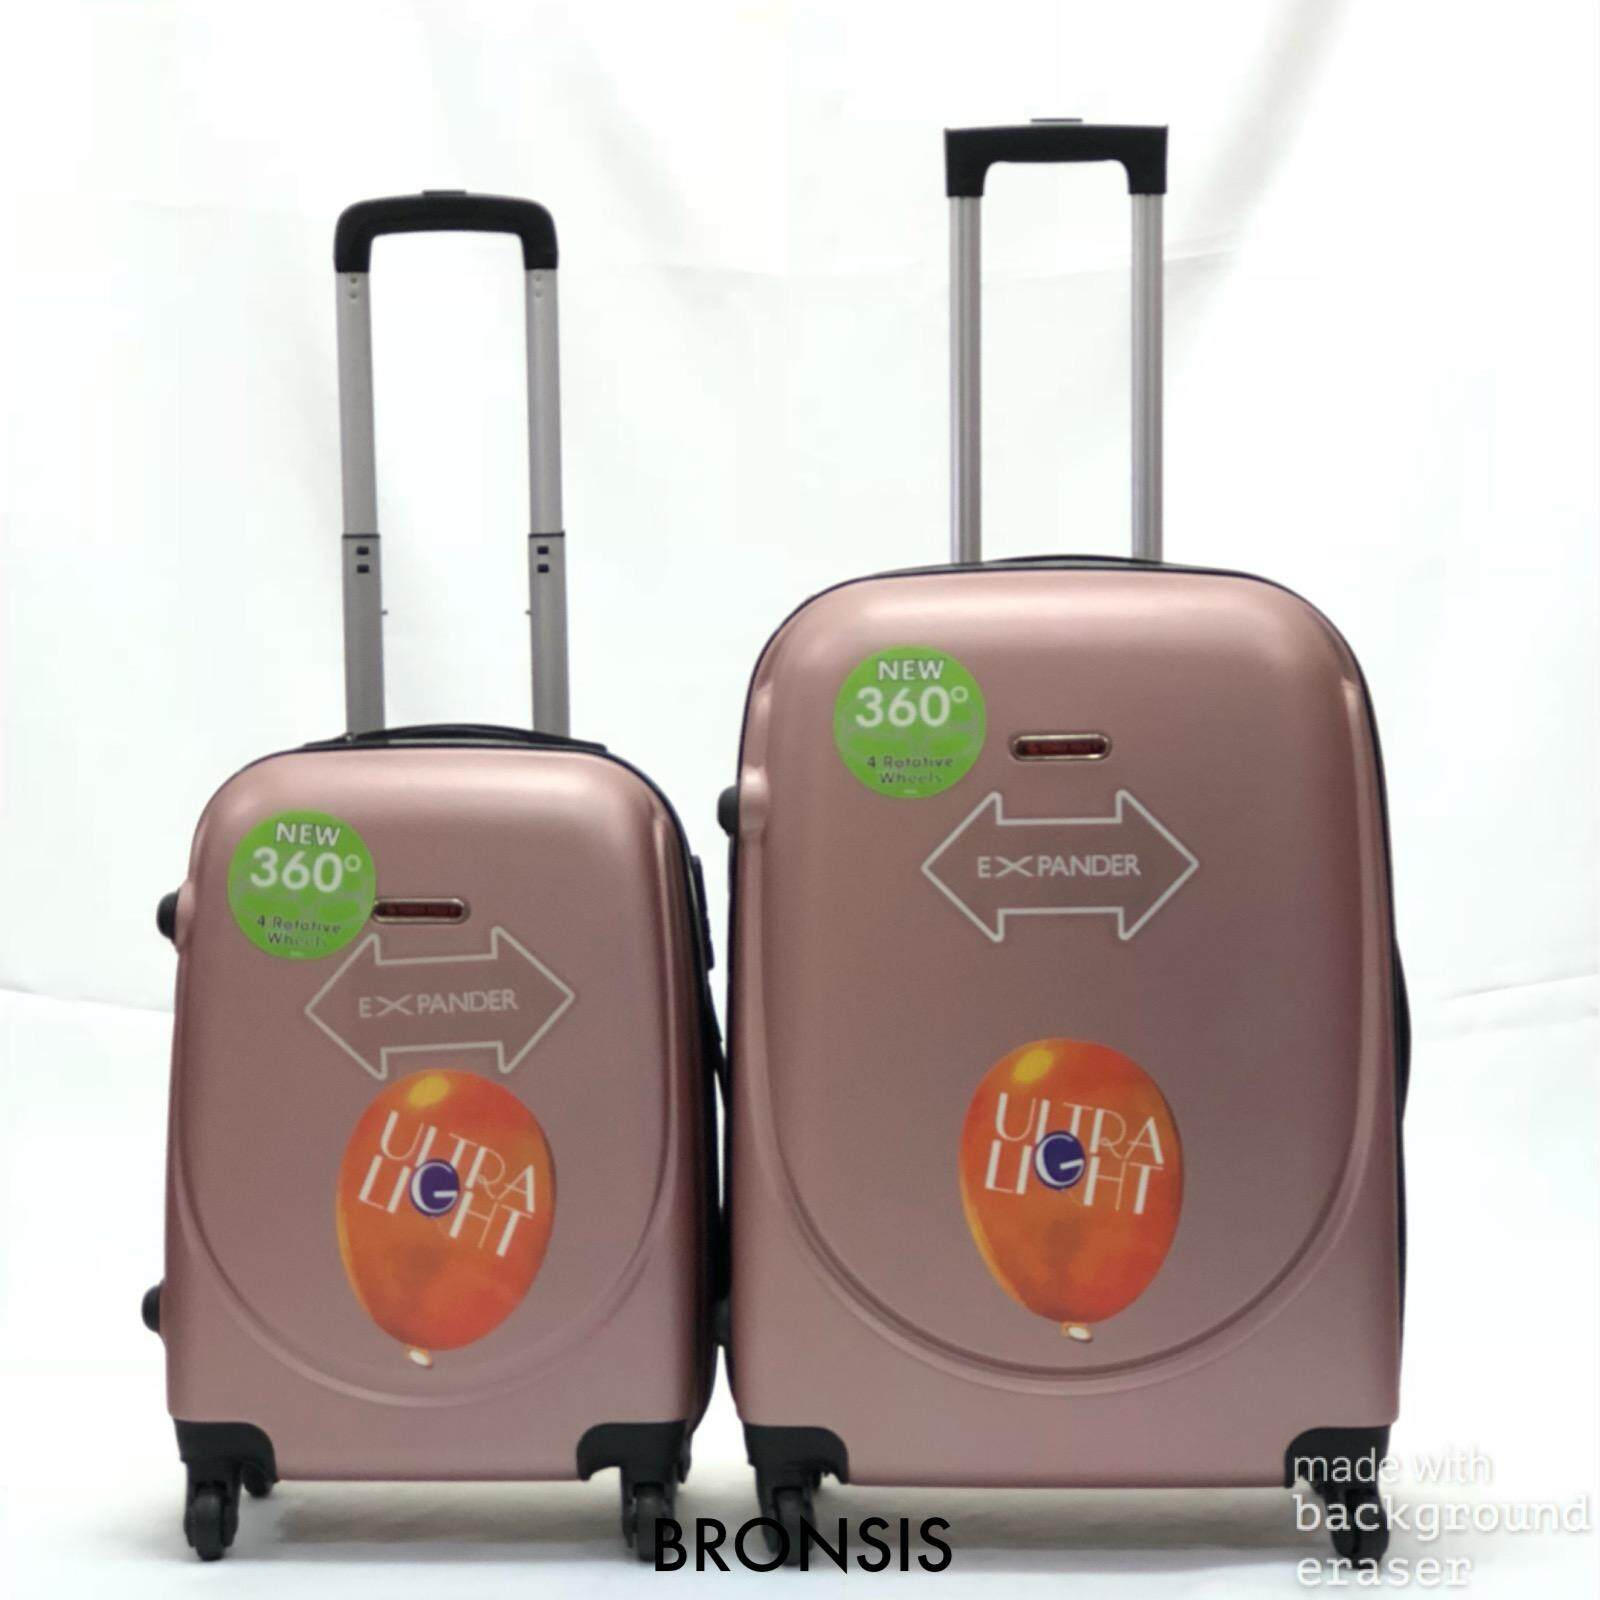 Luggage Sets - Buy Luggage Sets at Best Price in Malaysia  0a5cfee1b8cdf